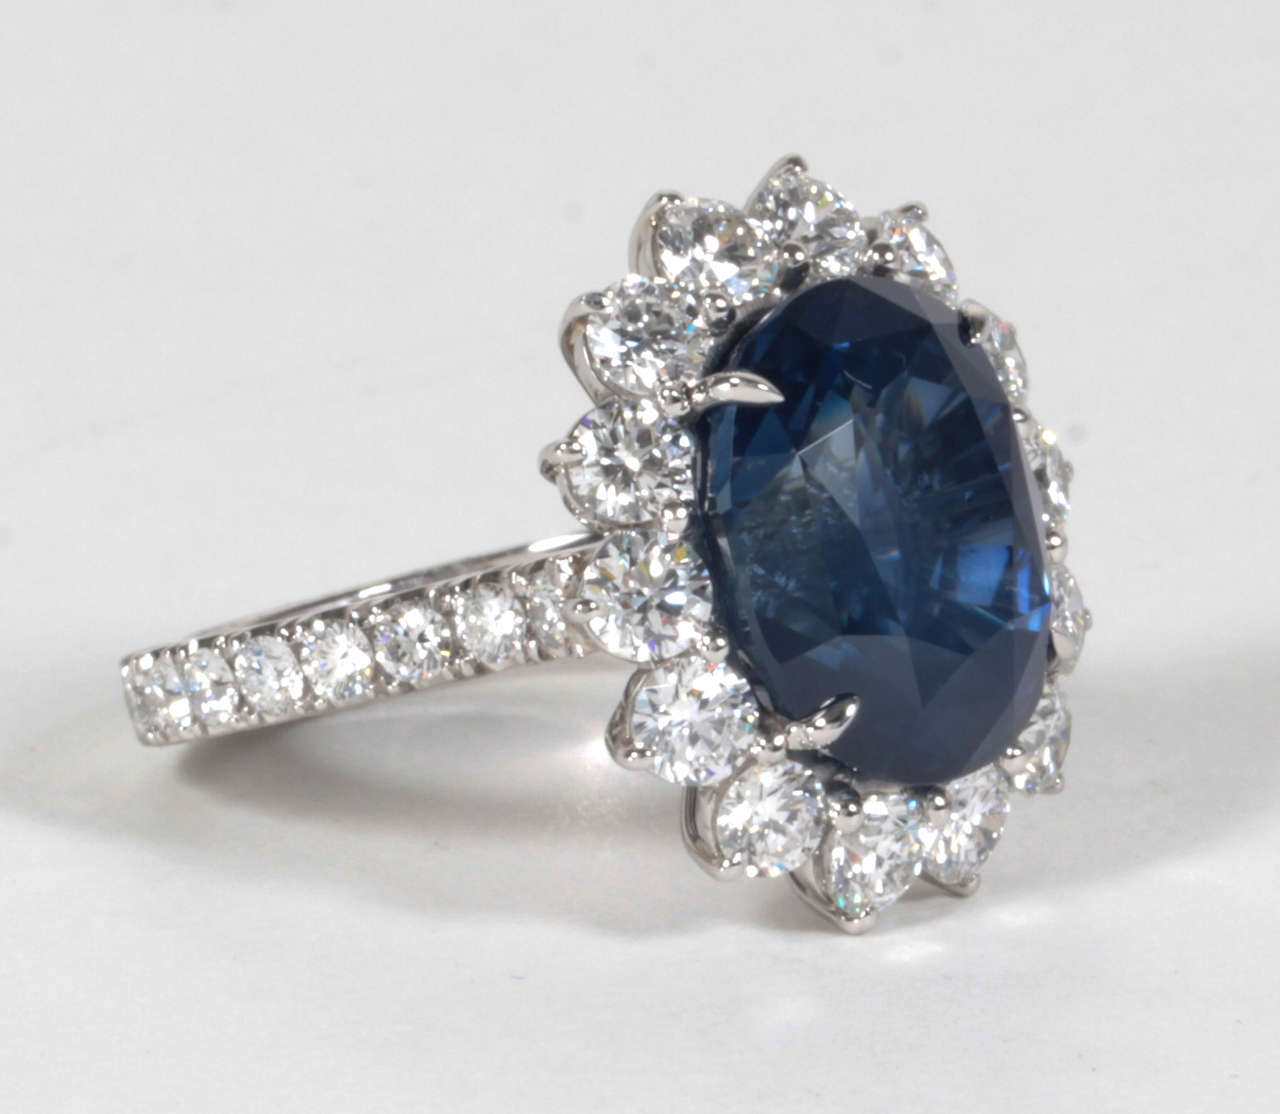 Elegant 11.73 Carat GIA Certified Sapphire Diamond Platinum Ring In New Condition For Sale In New York, NY